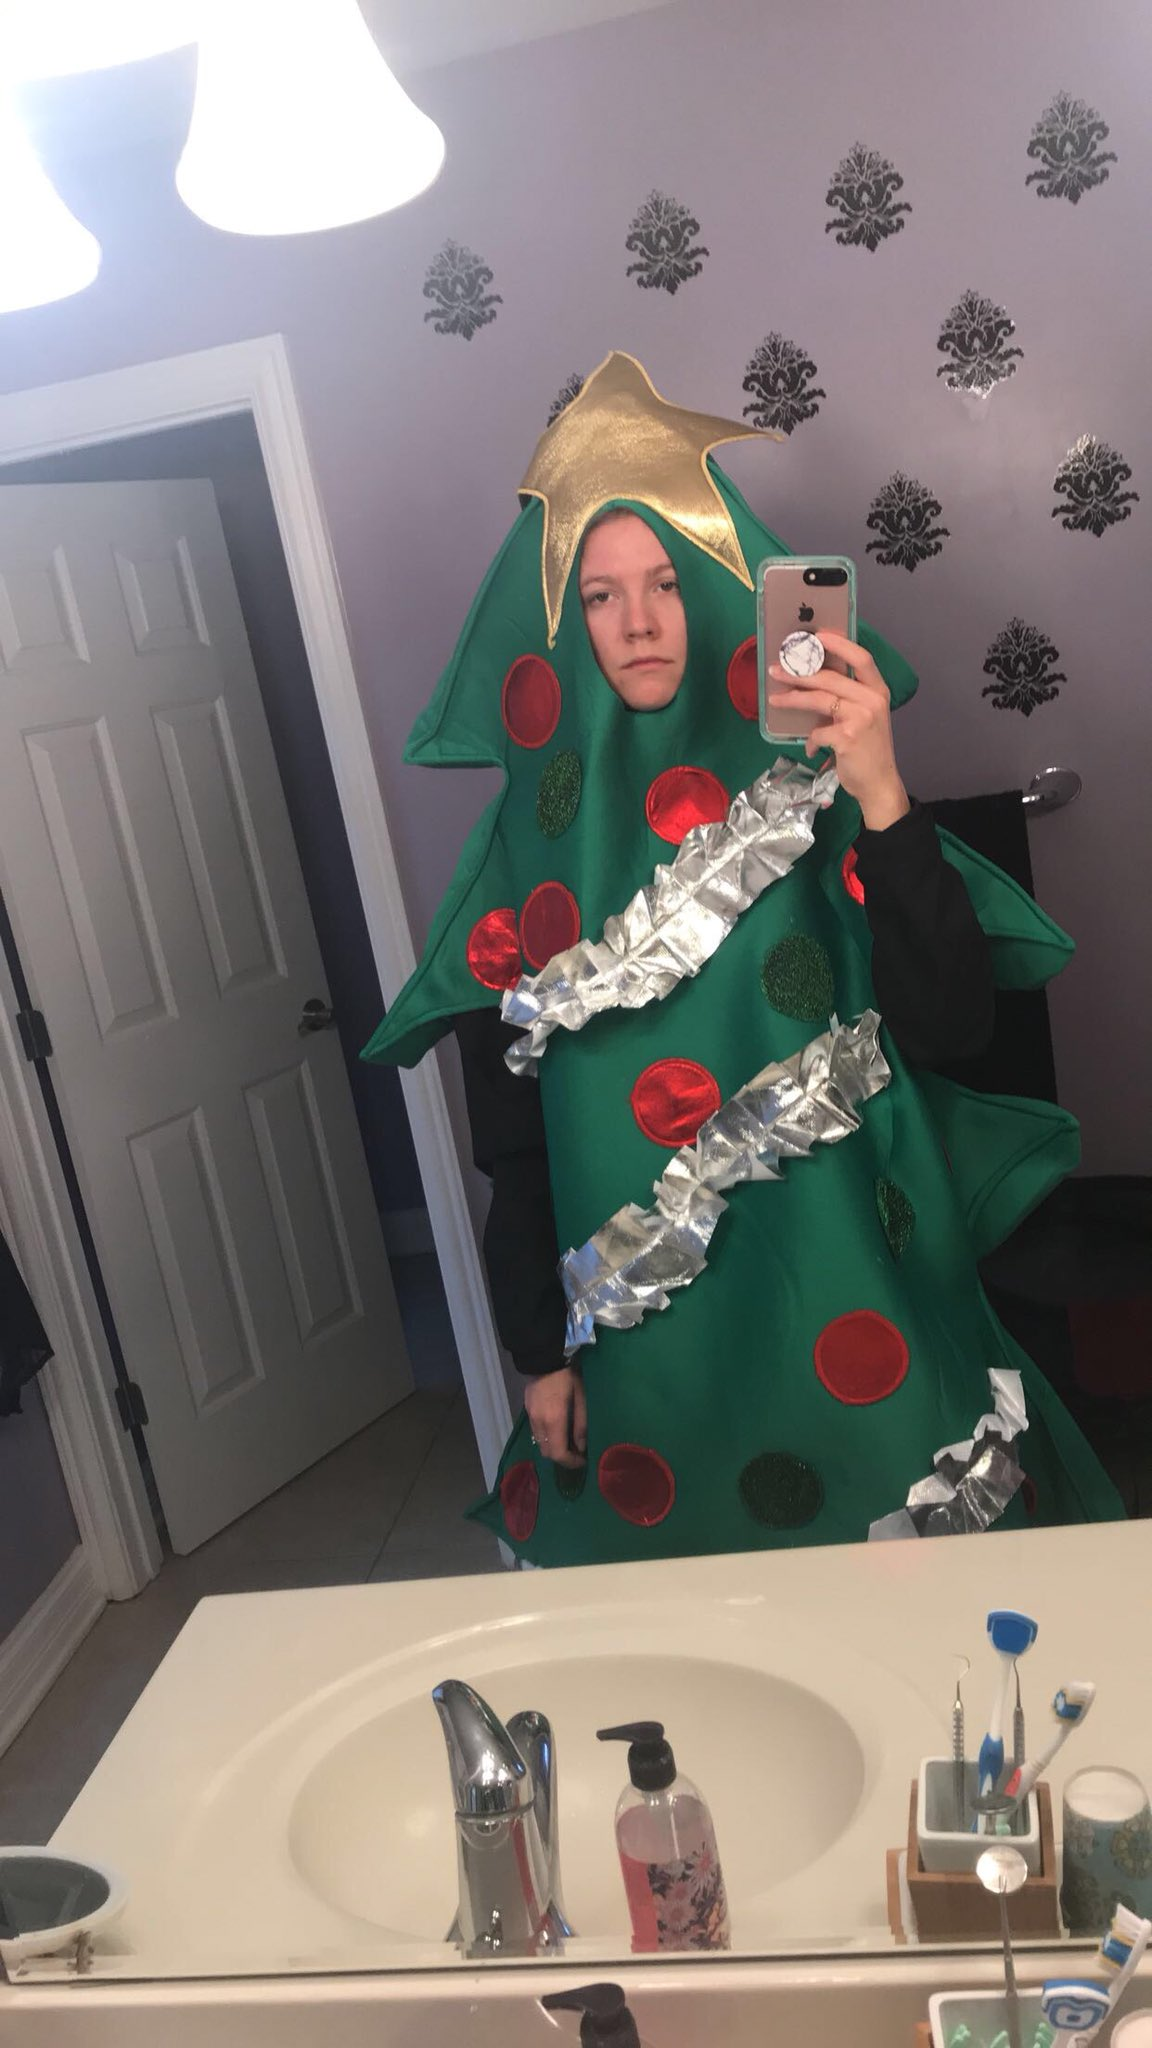 RT @kelseyhall1313: 1,000 retweets and I'll wear this to all my classes for the rest of the semester https://t.co/uzIDepK43k